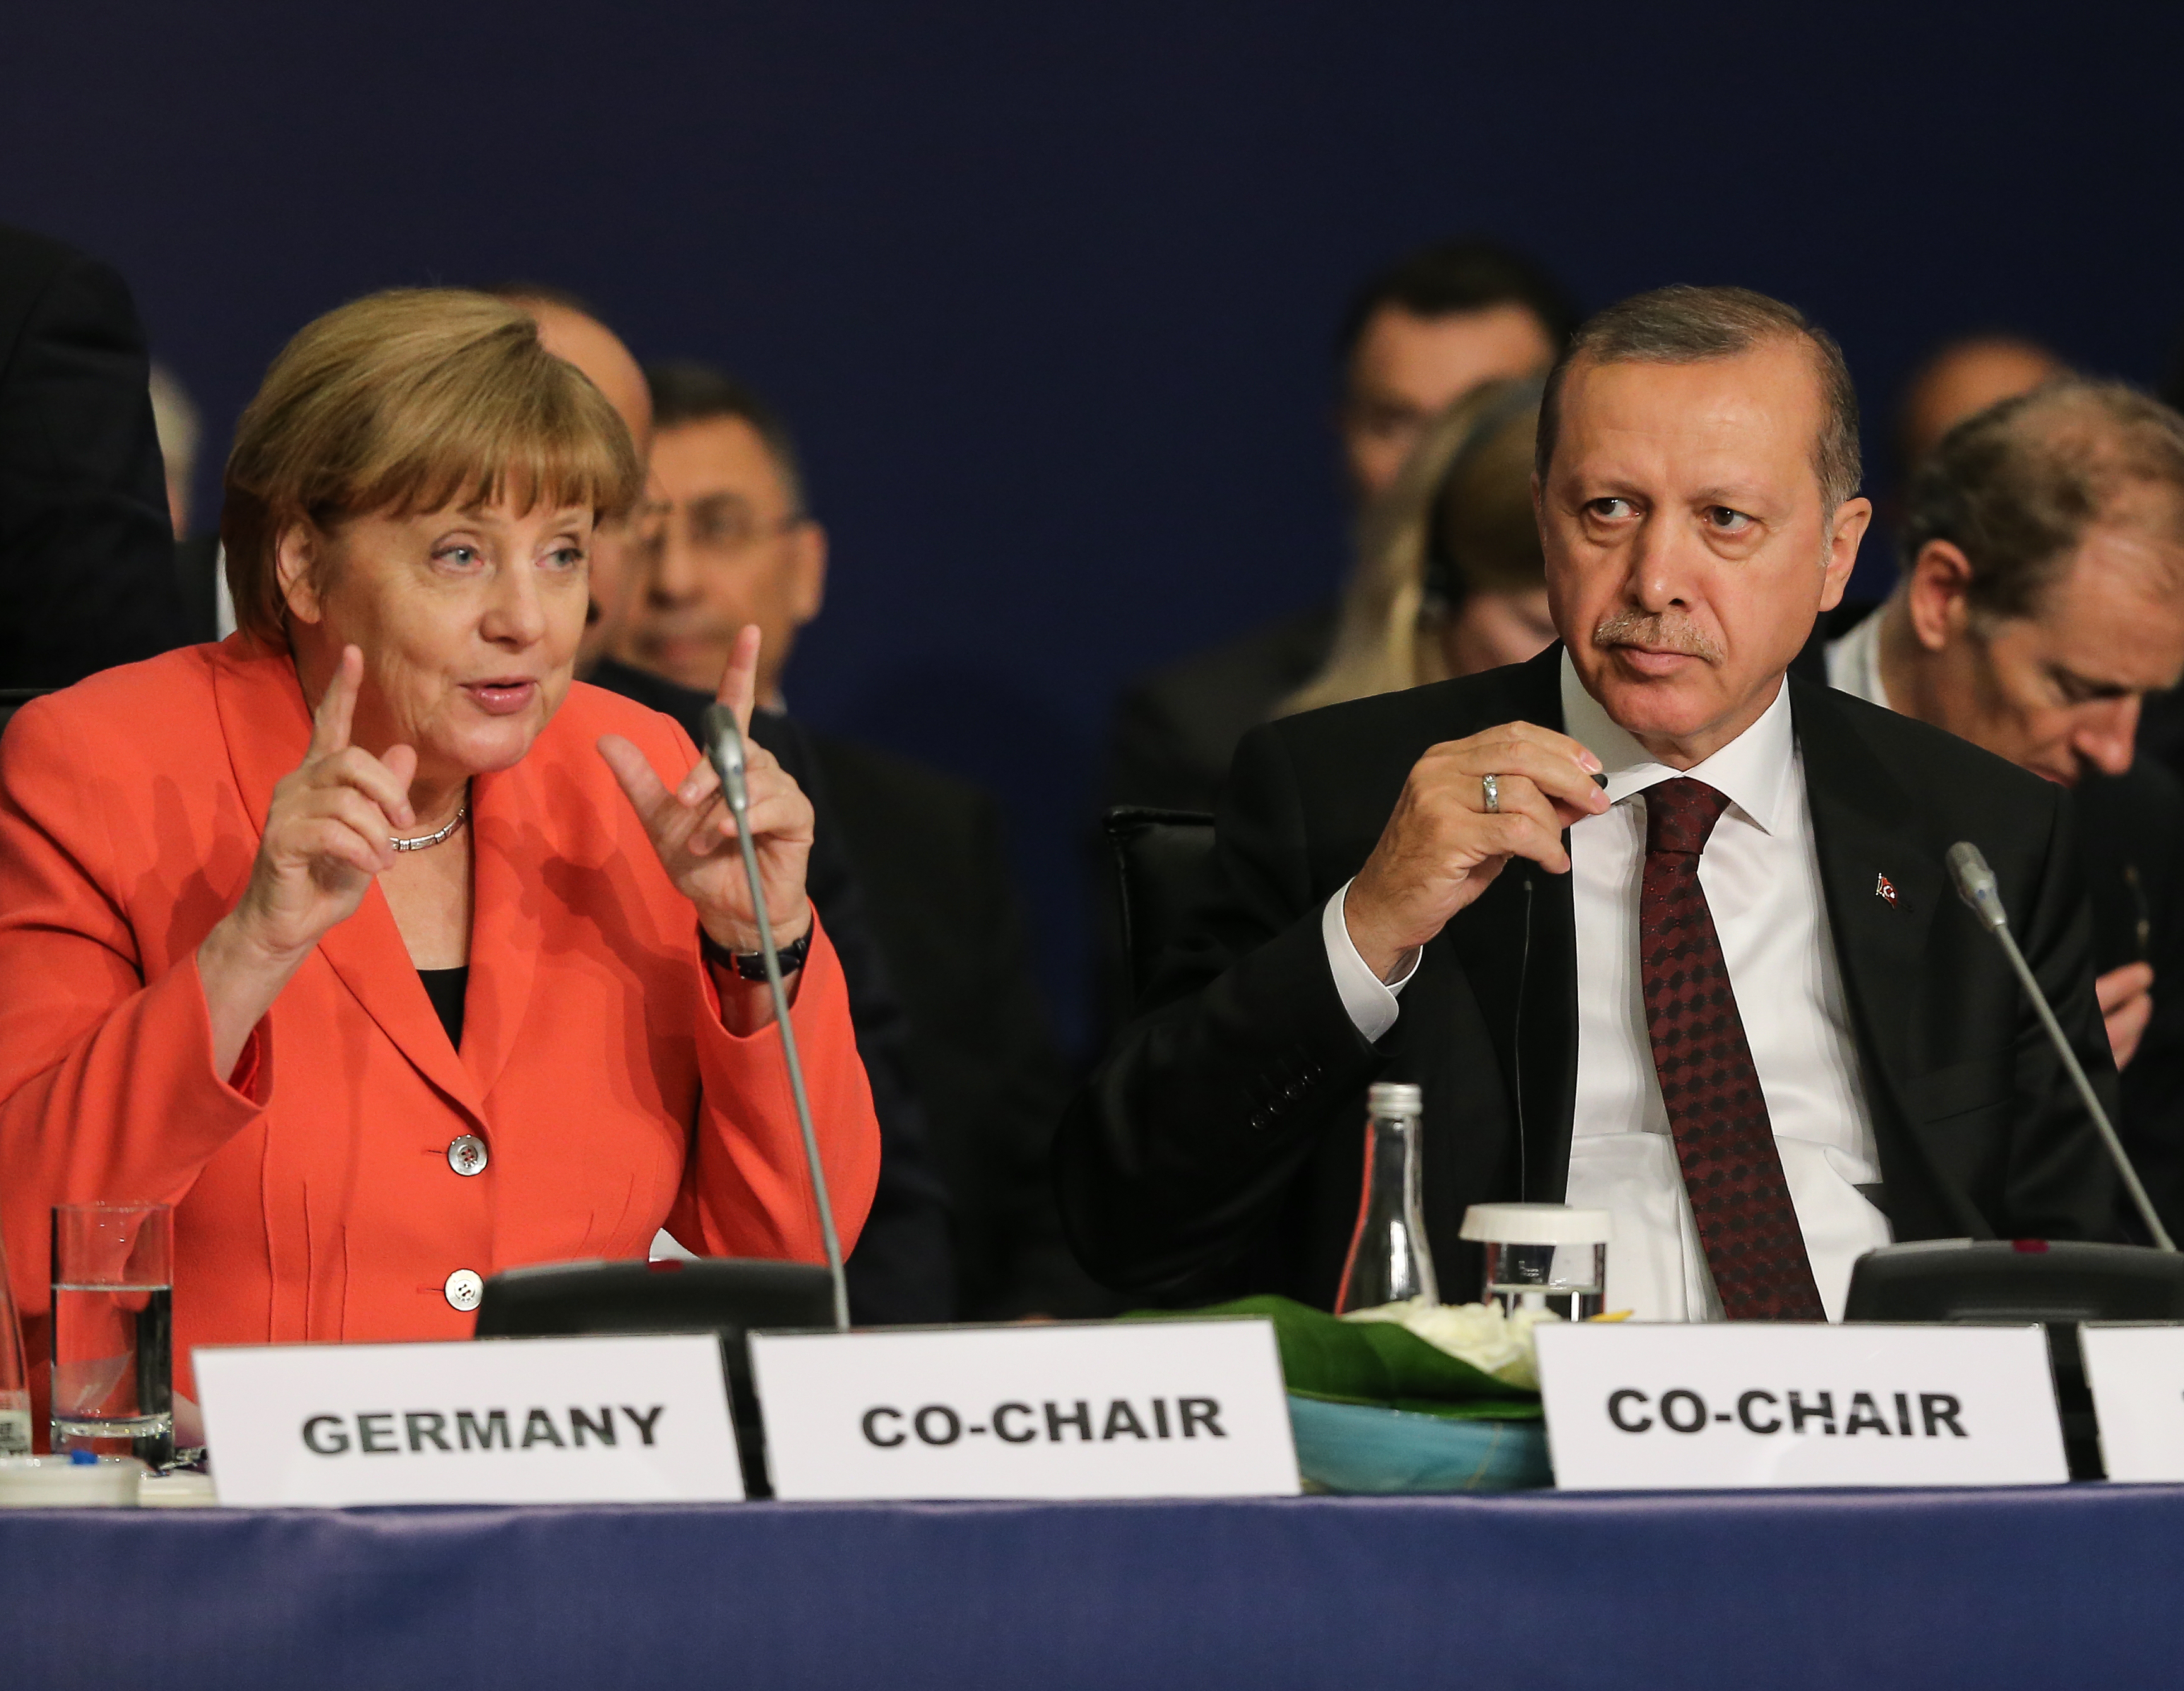 De Duitse bondskanselier Merkel en de Turkse president Erdogan tijdens de World Humanitarian Summit in Istanbul, 2016. Bron: Flickr  / World Humanitarian Summit